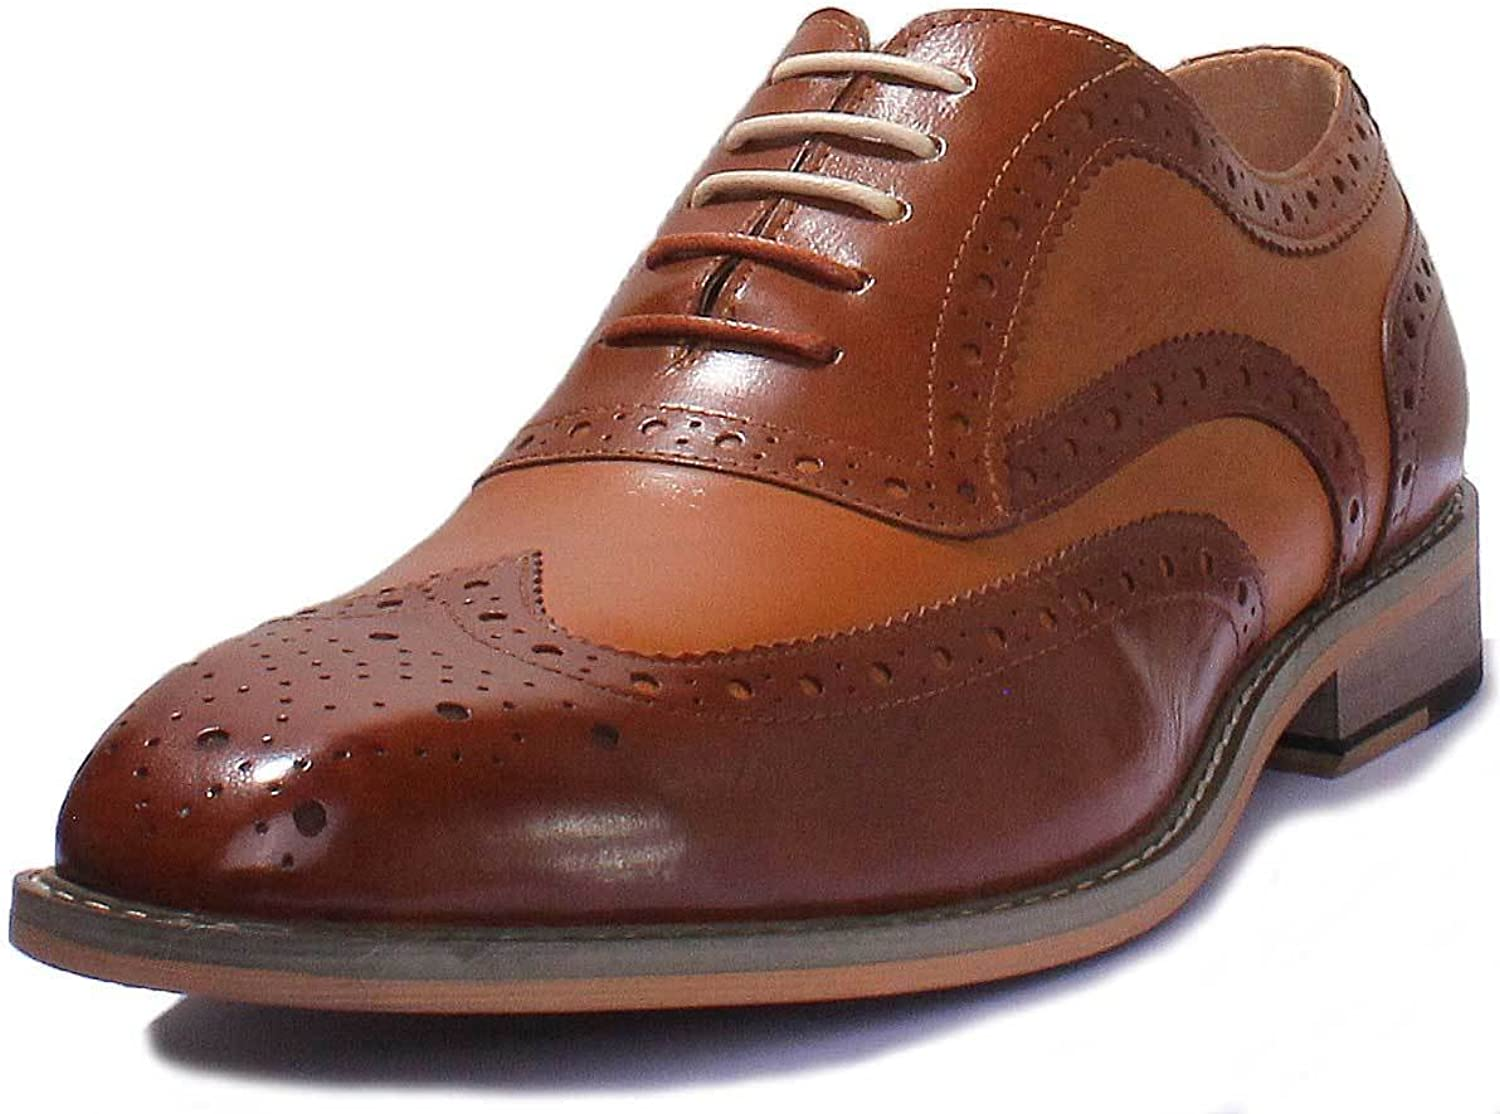 Justin Reece Grant Two Tone Leather Lace up Formal Brogue